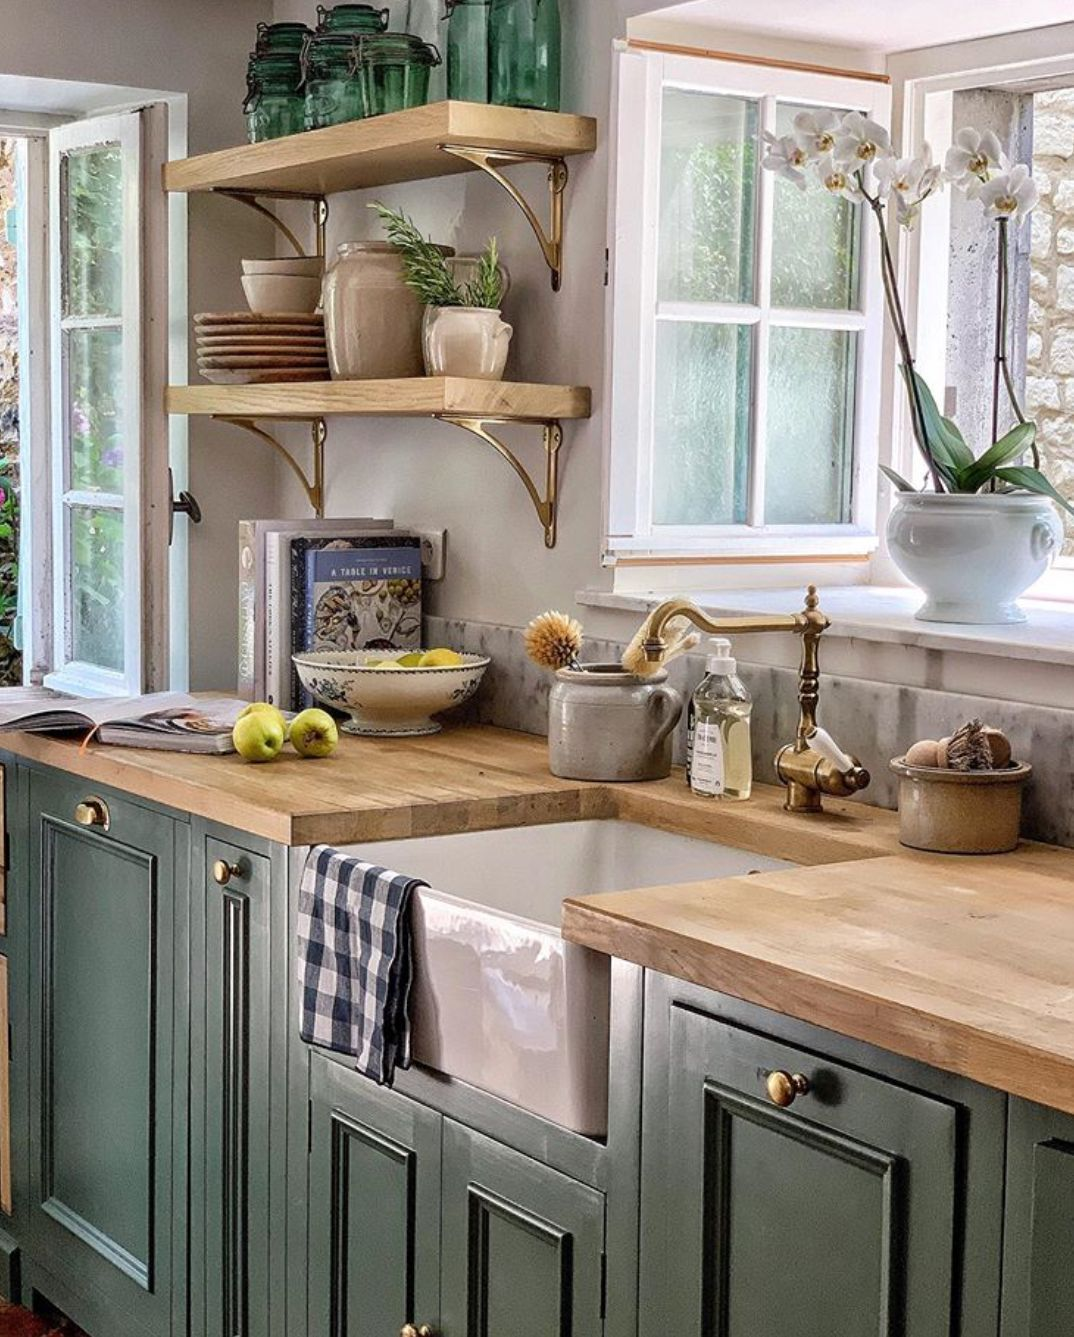 30 Popular Kitchen Style Design Ideas For Comfortable Old Kitchen Green Kitchen Designs Green Country Kitchen Country Kitchen Designs